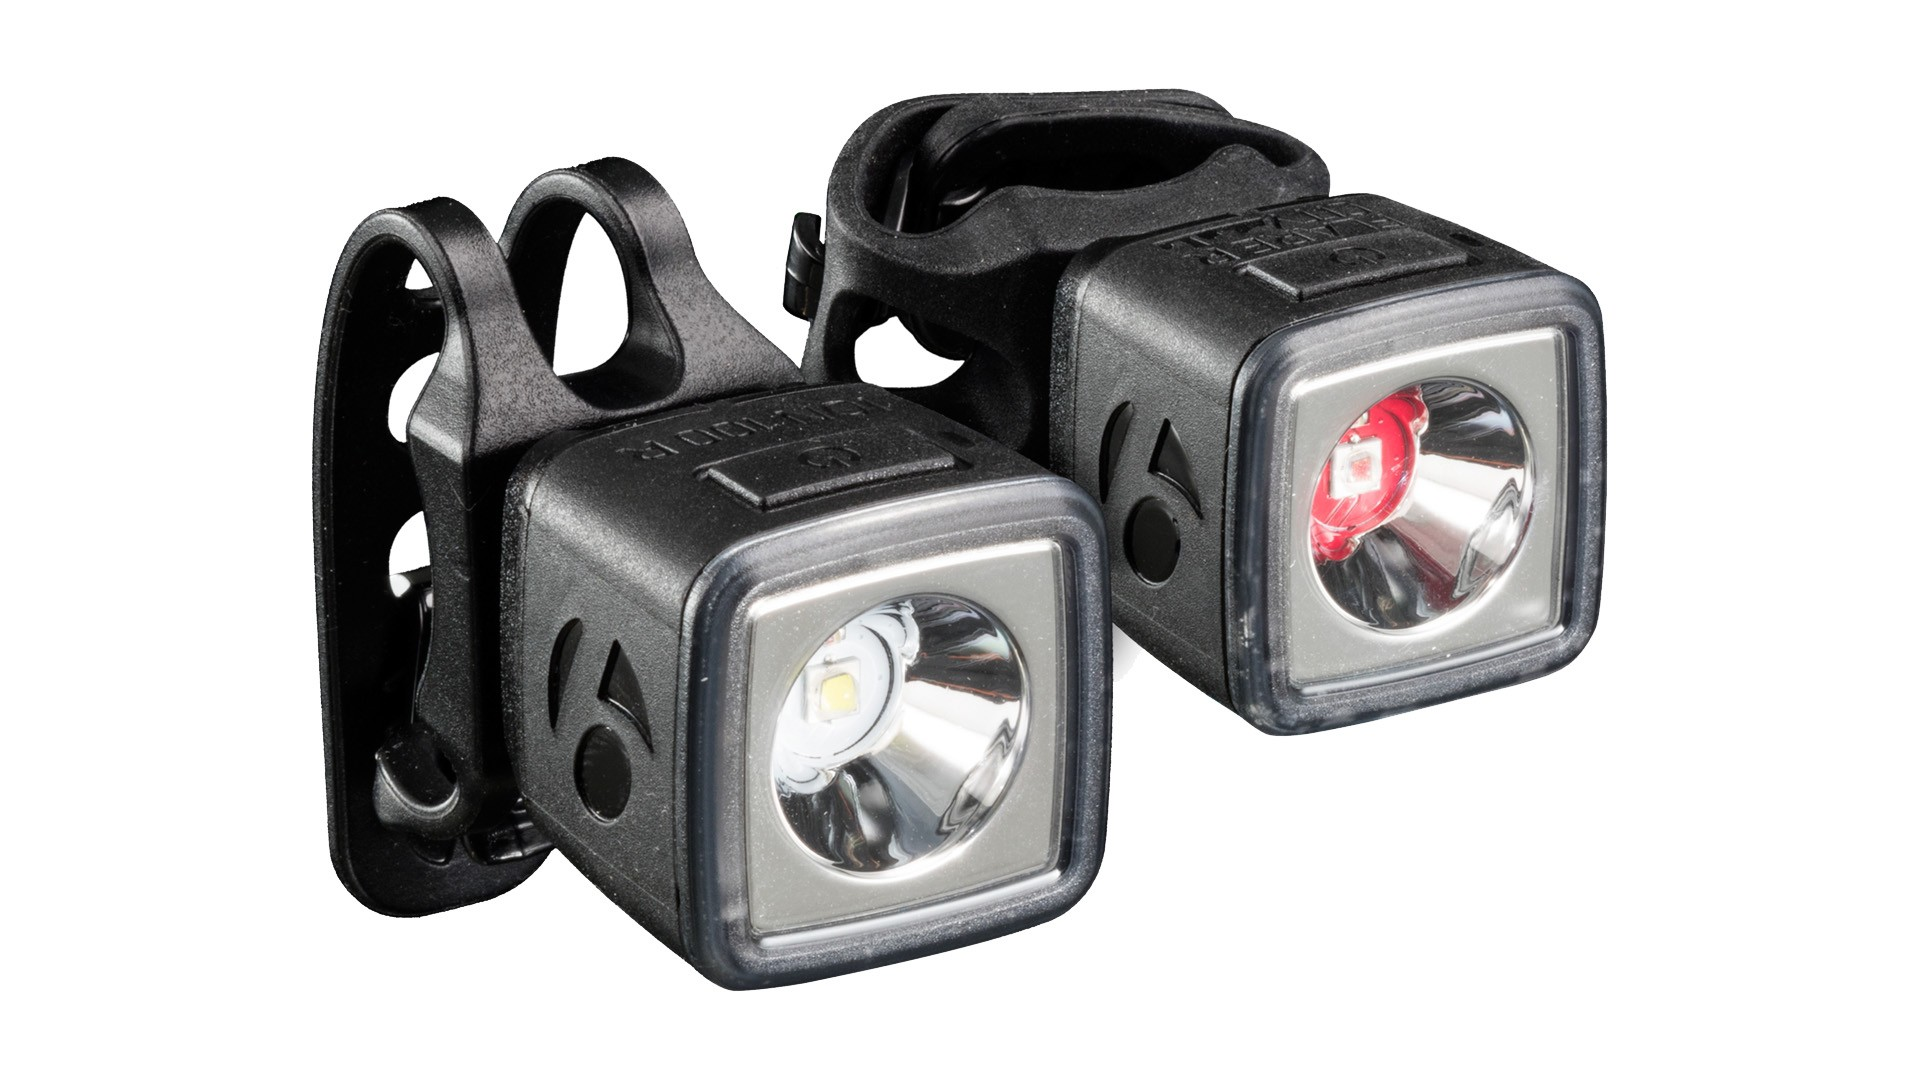 A set of lights designed to be eyecatching in daylight helps keep you visible in the city